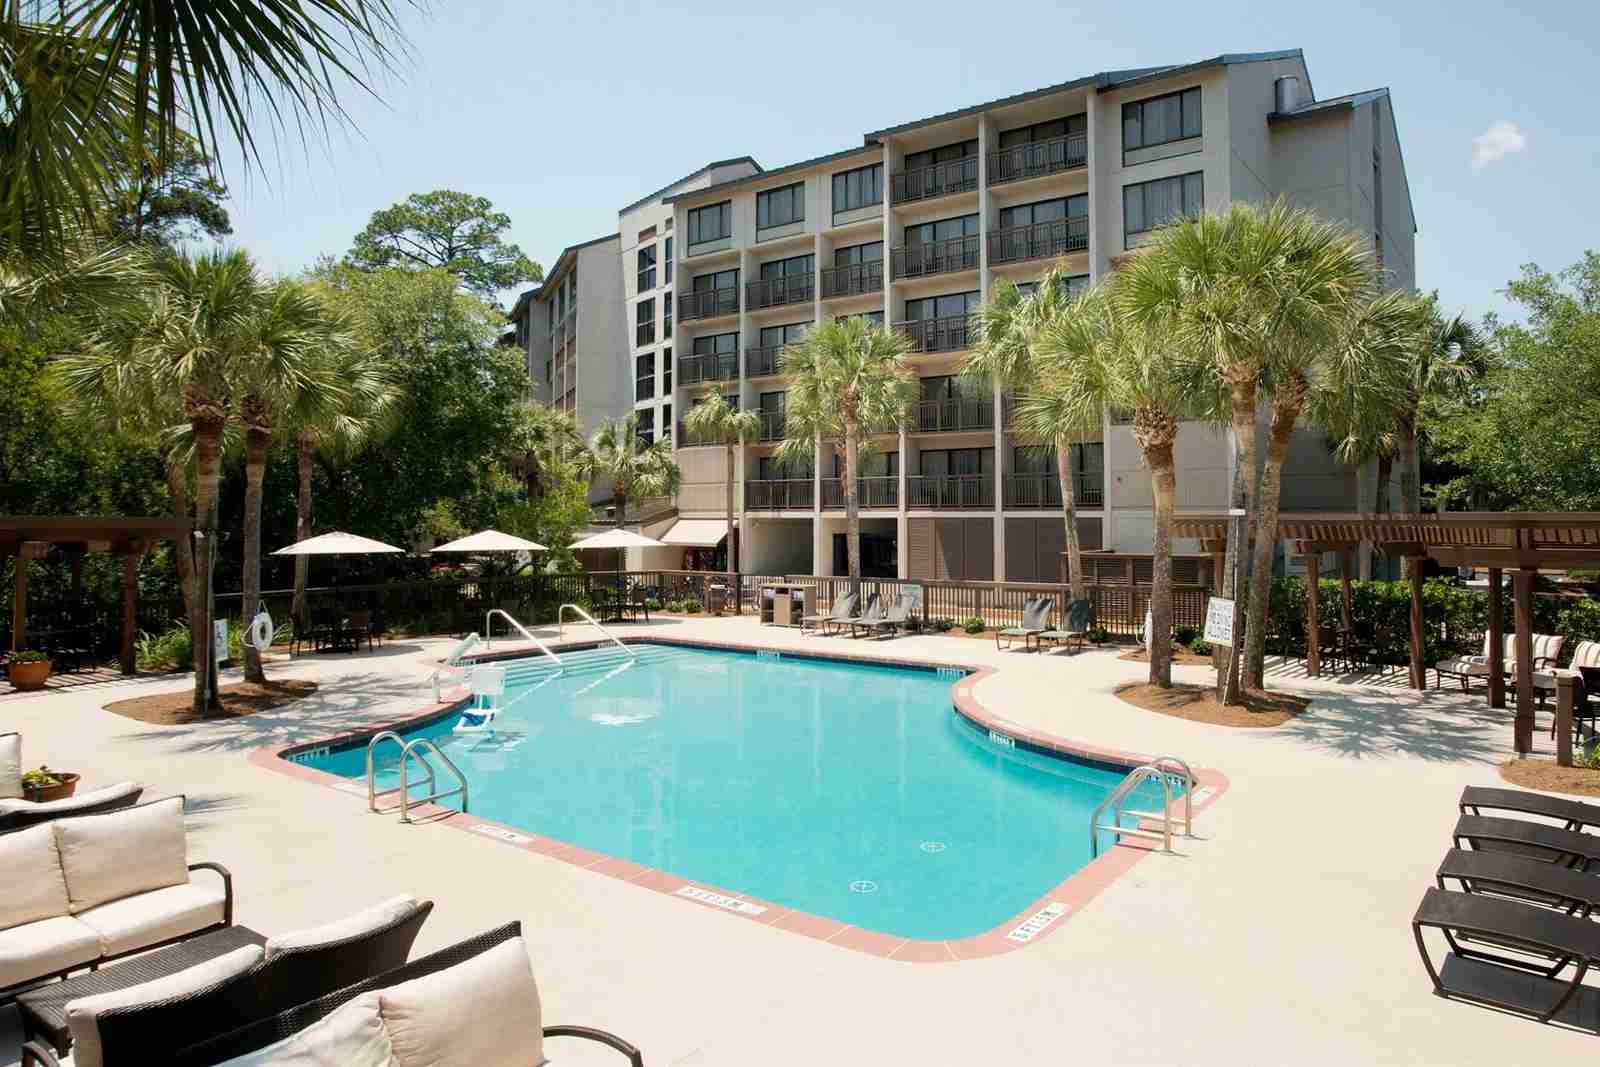 (Photo courtesy of Holiday Inn Express Hilton Head)